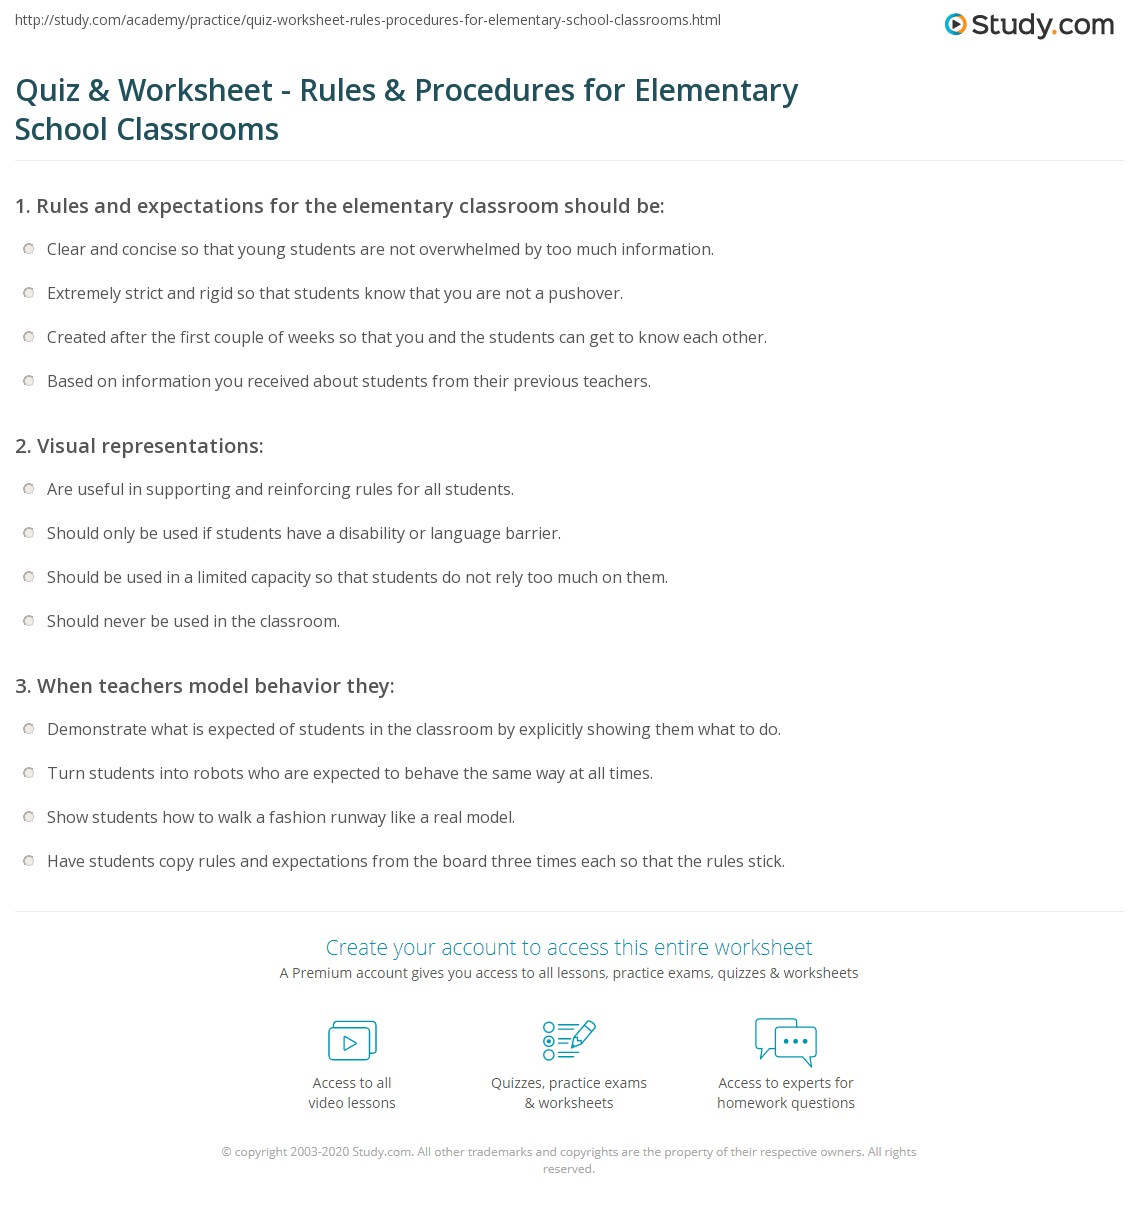 Elementary Classroom Procedures ~ Quiz worksheet rules procedures for elementary